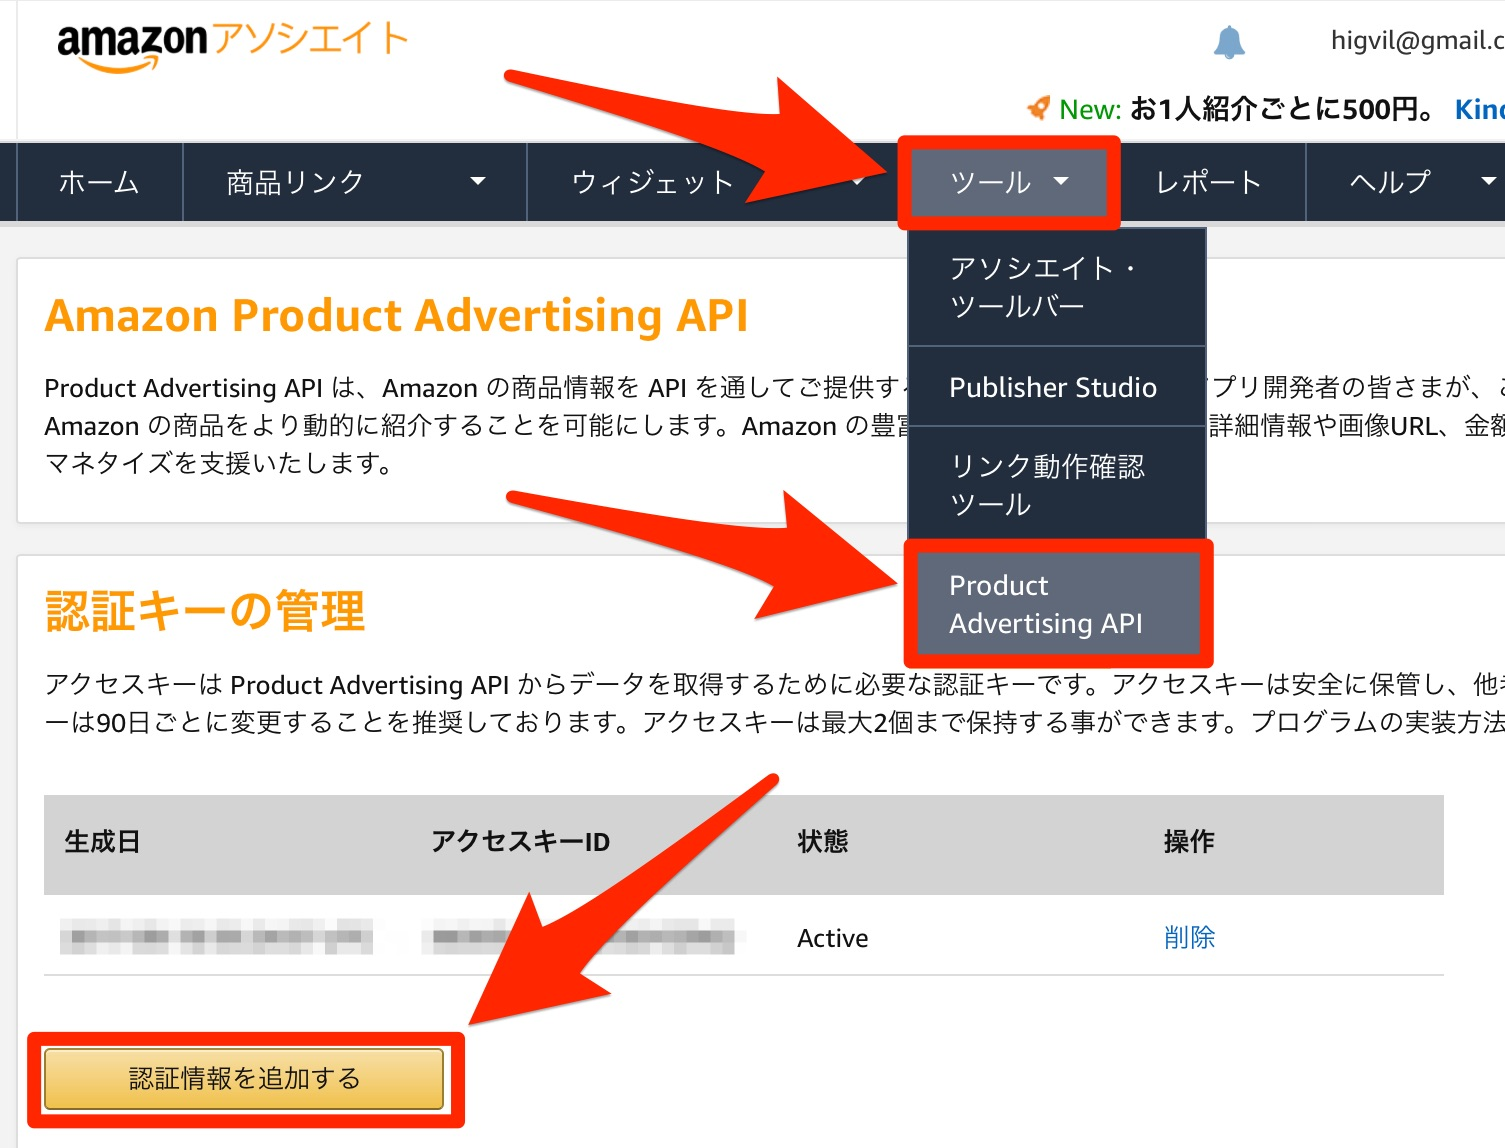 Product Advertising API